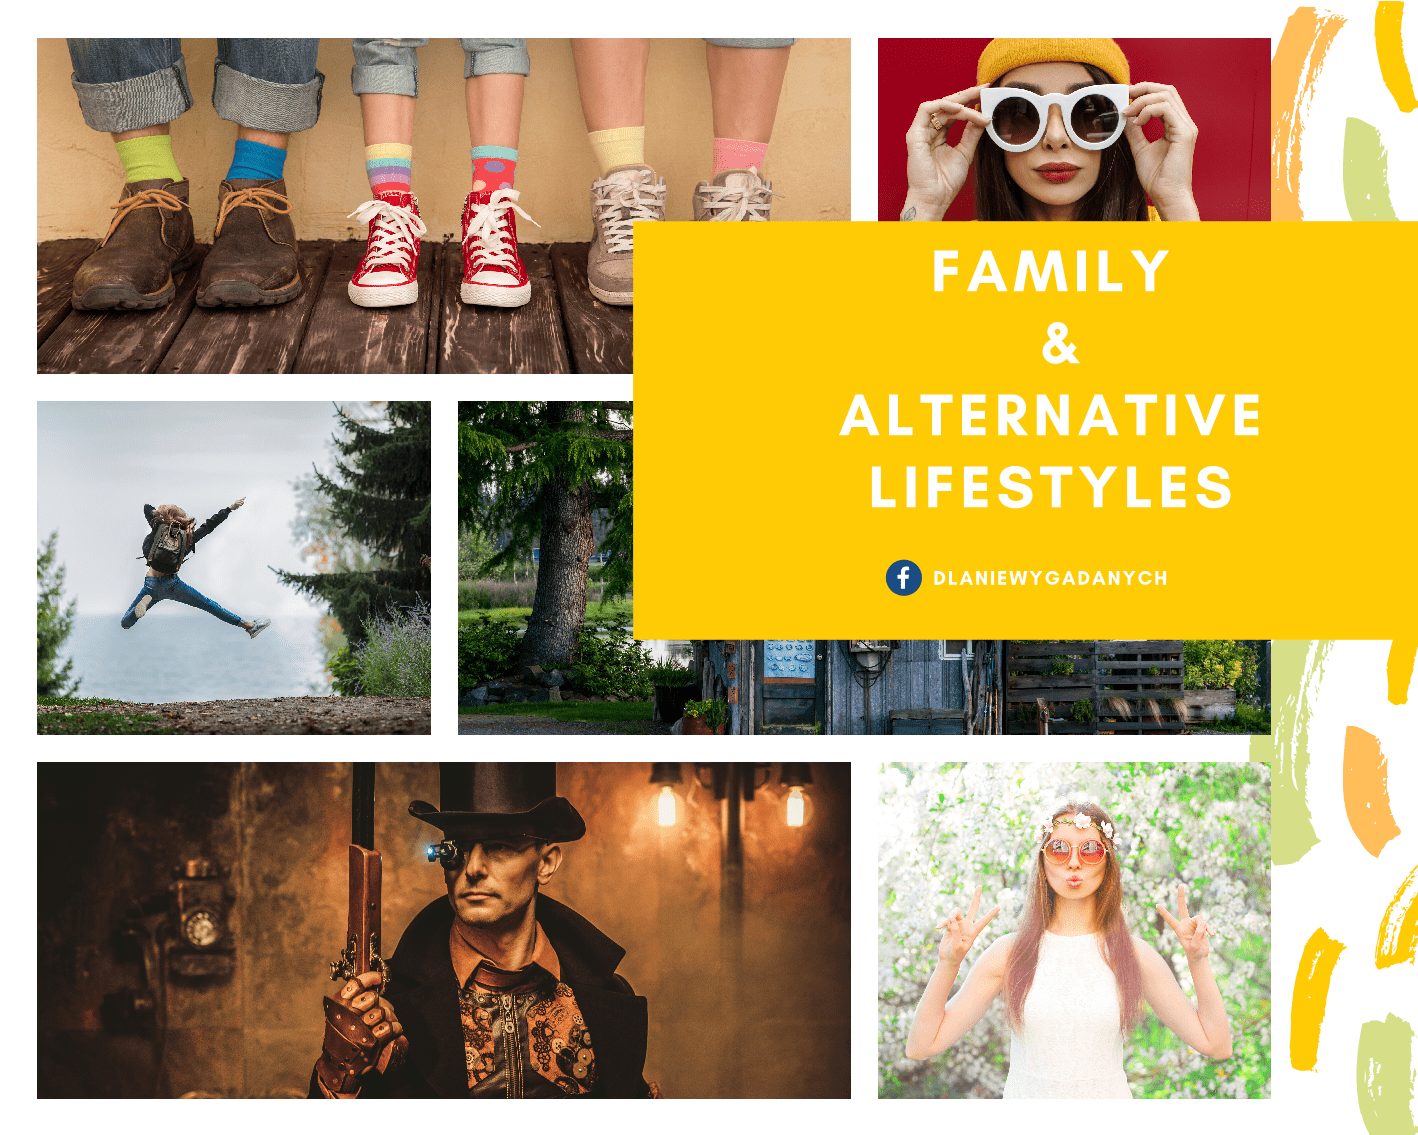 FAMILY & ALTERNATIVE LIFESTYLES